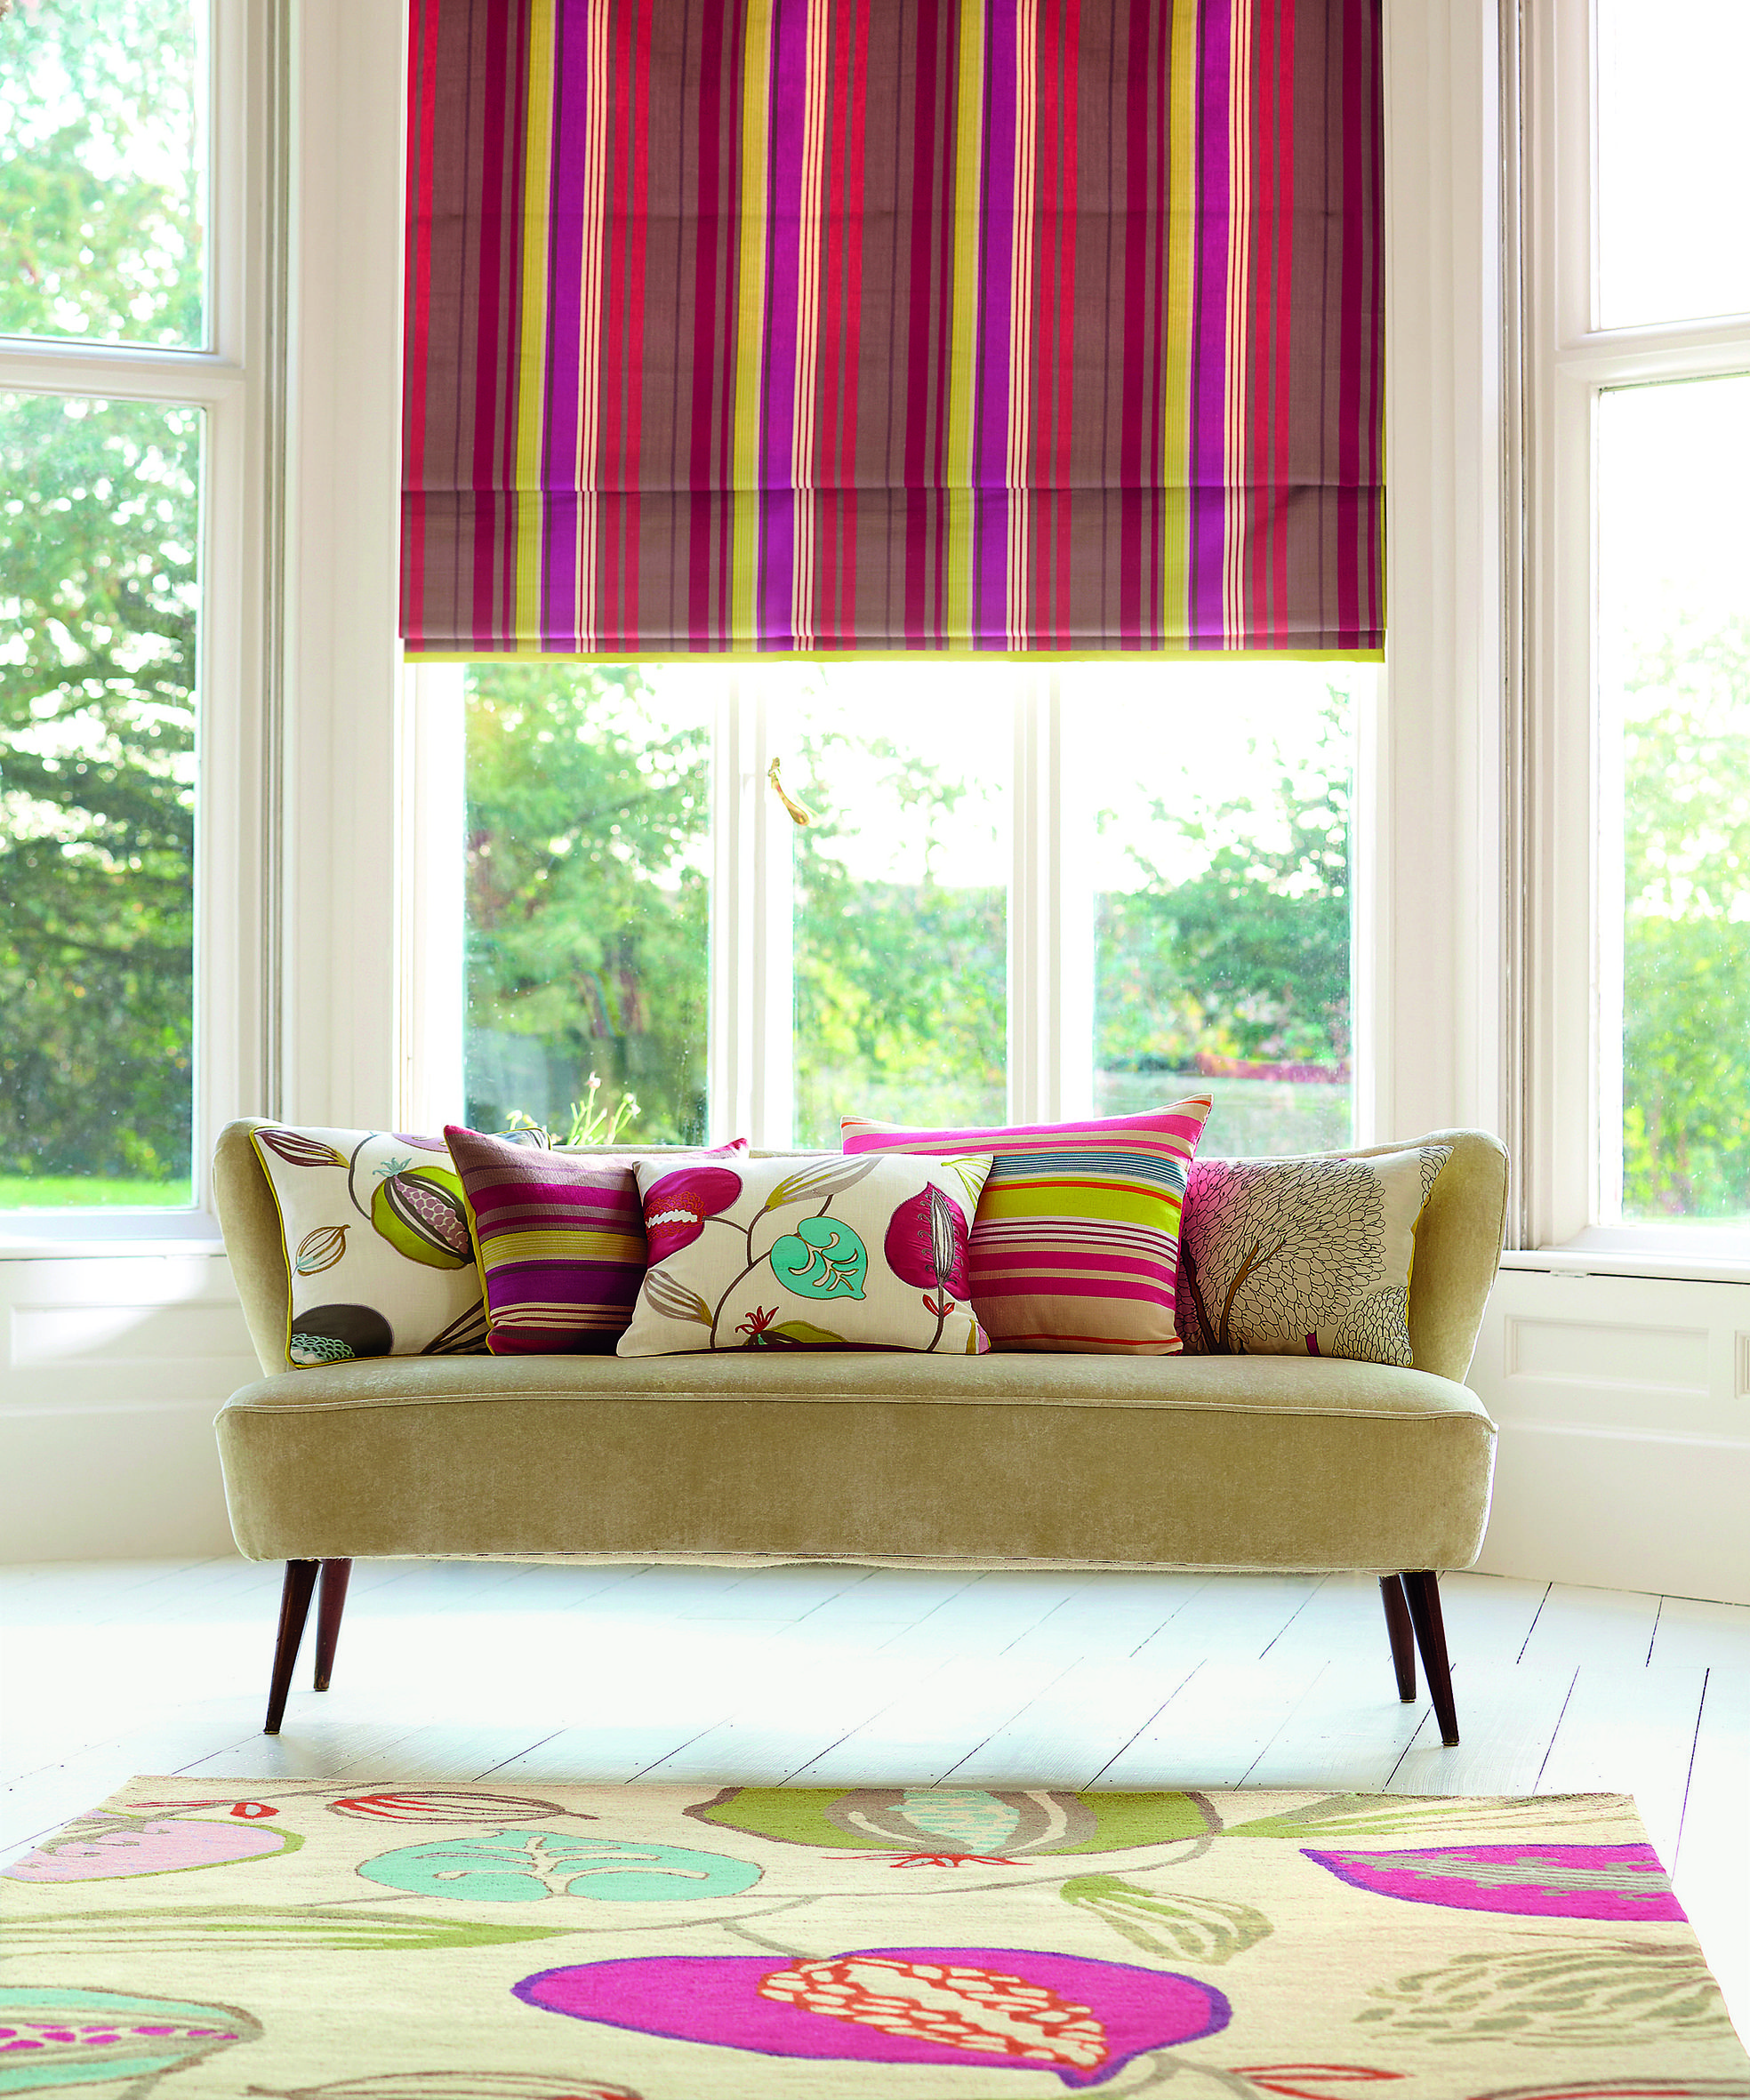 Hot Pink Bedroom Accessories Bedroom Ideas Pinterest Bedroom Decor Ideas Uk Lilac Bedroom Accessories: Love This New Harlequin Rug From Surya!